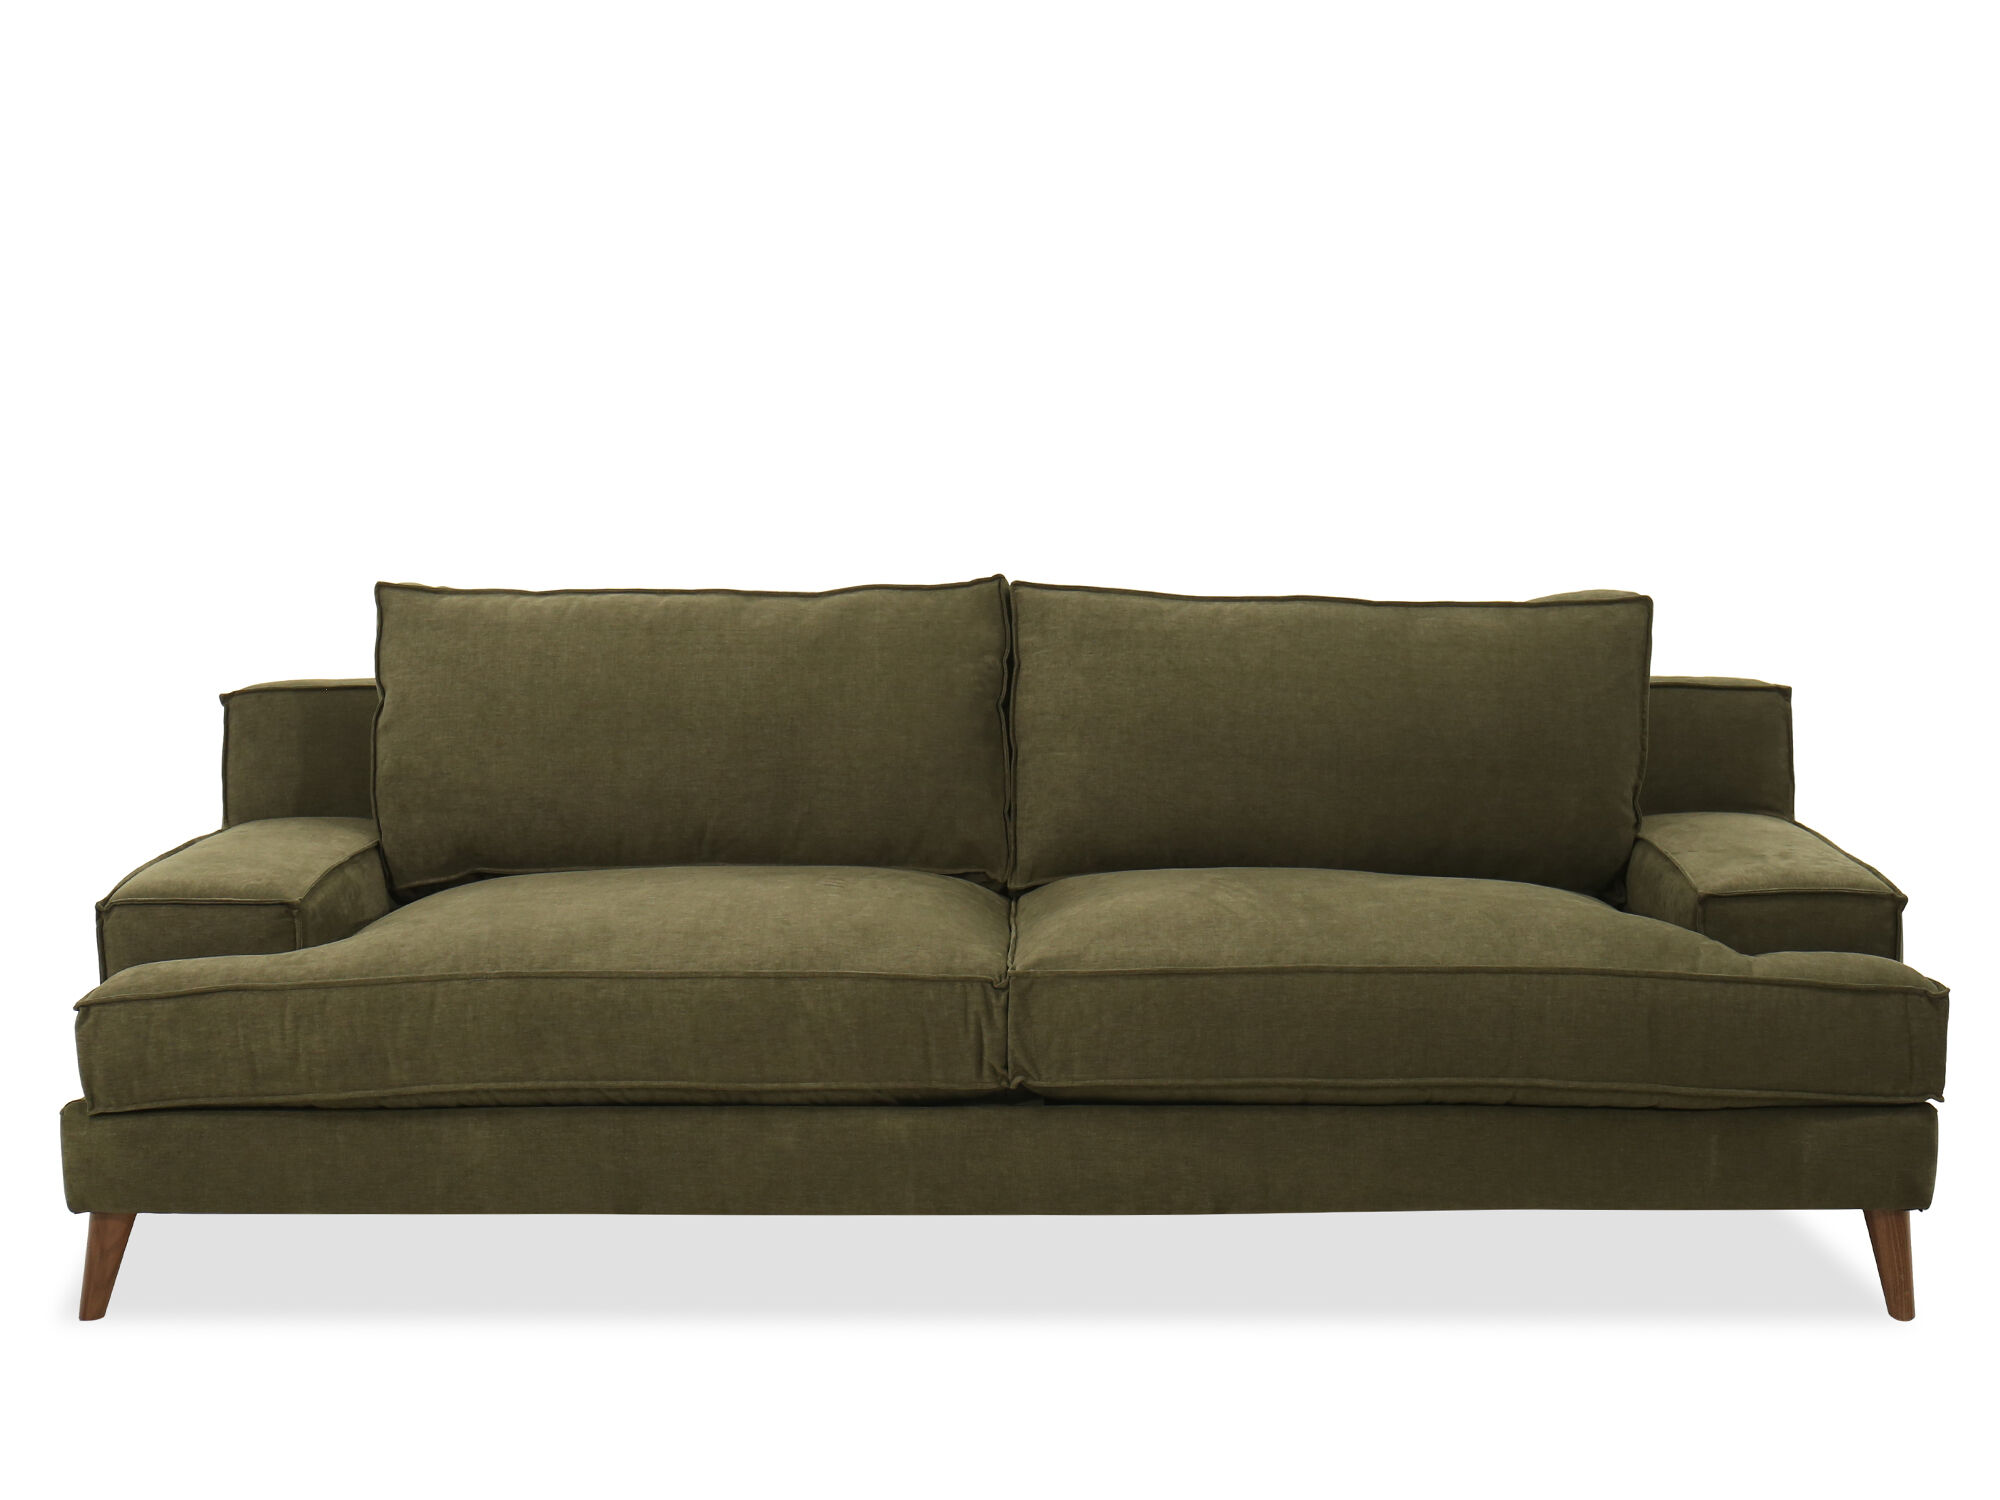 Modern Low Profile Sofa In Forest Green ...